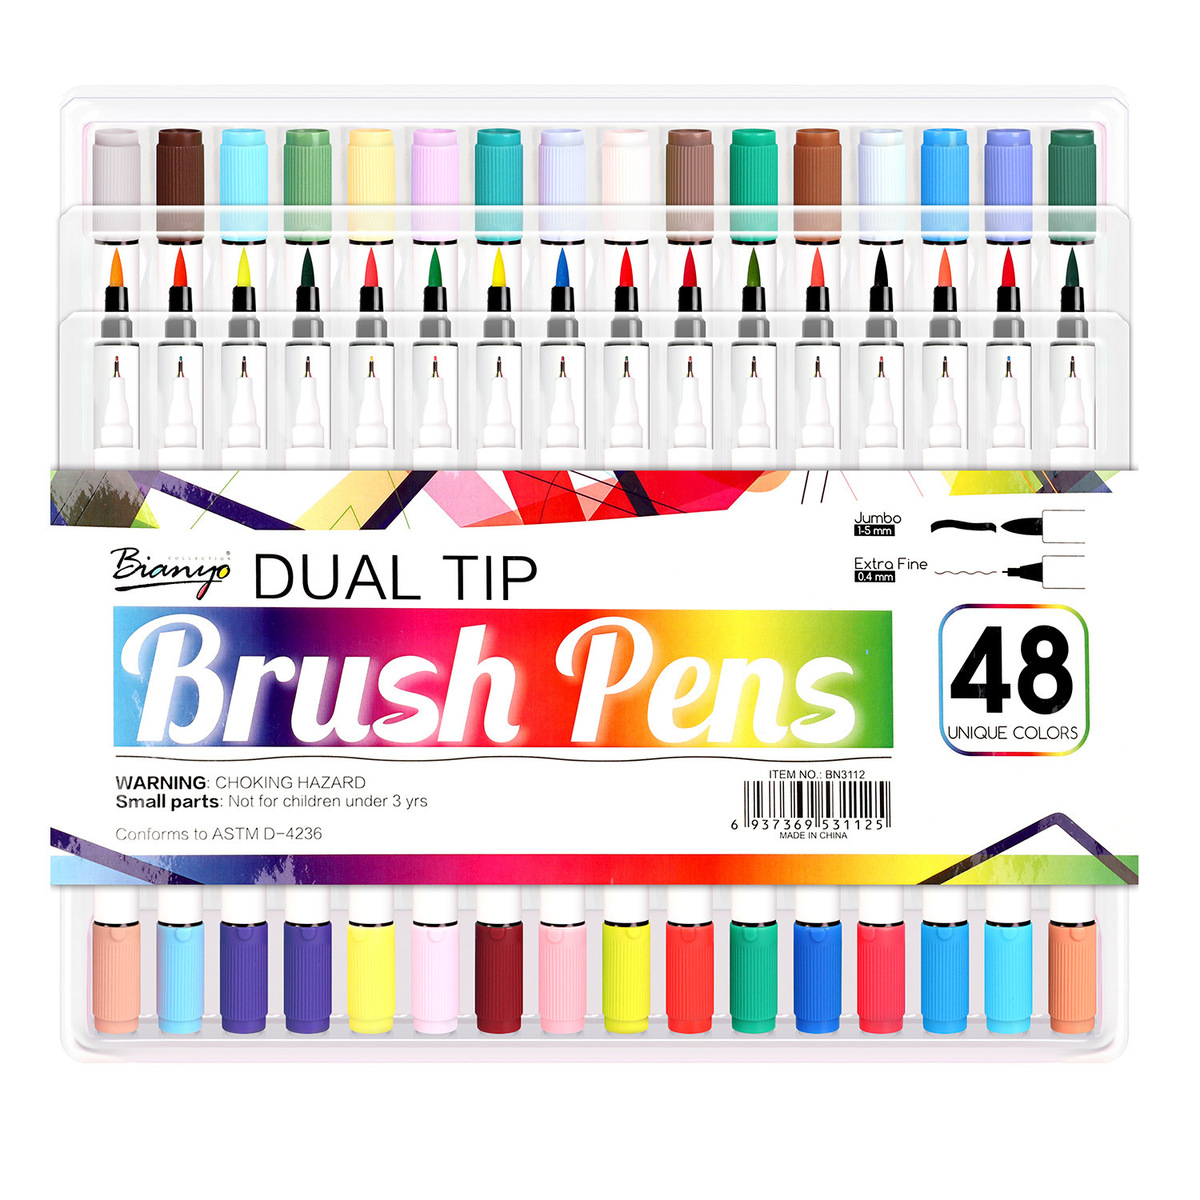 40 Colors Colored Marker Pen Set Dual Head Watercolors Brush Pen Sketch Markers For Drawing Manga Fashion Design Art Supplies sketch marker pen 218 colors dual head sketch markers set for school student drawing posters design art supplies